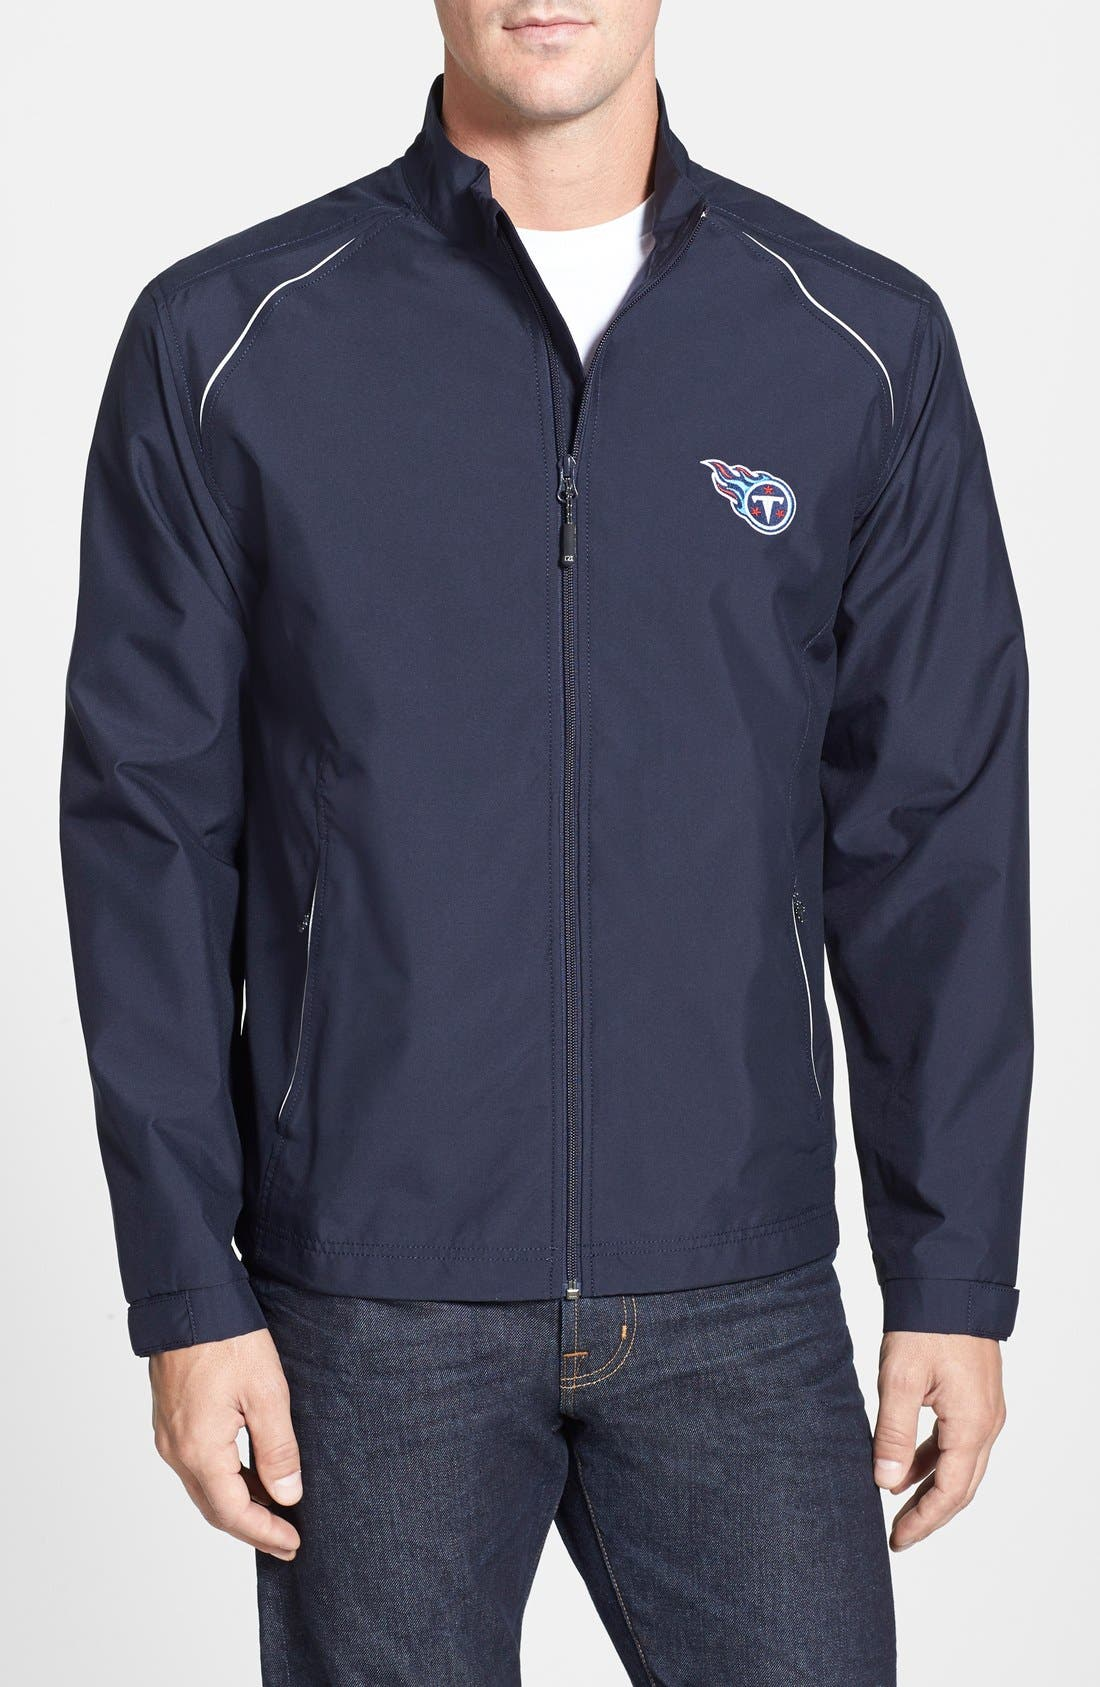 Tennessee Titans - Beacon WeatherTec Wind & Water Resistant Jacket,                             Main thumbnail 1, color,                             Navy Blue